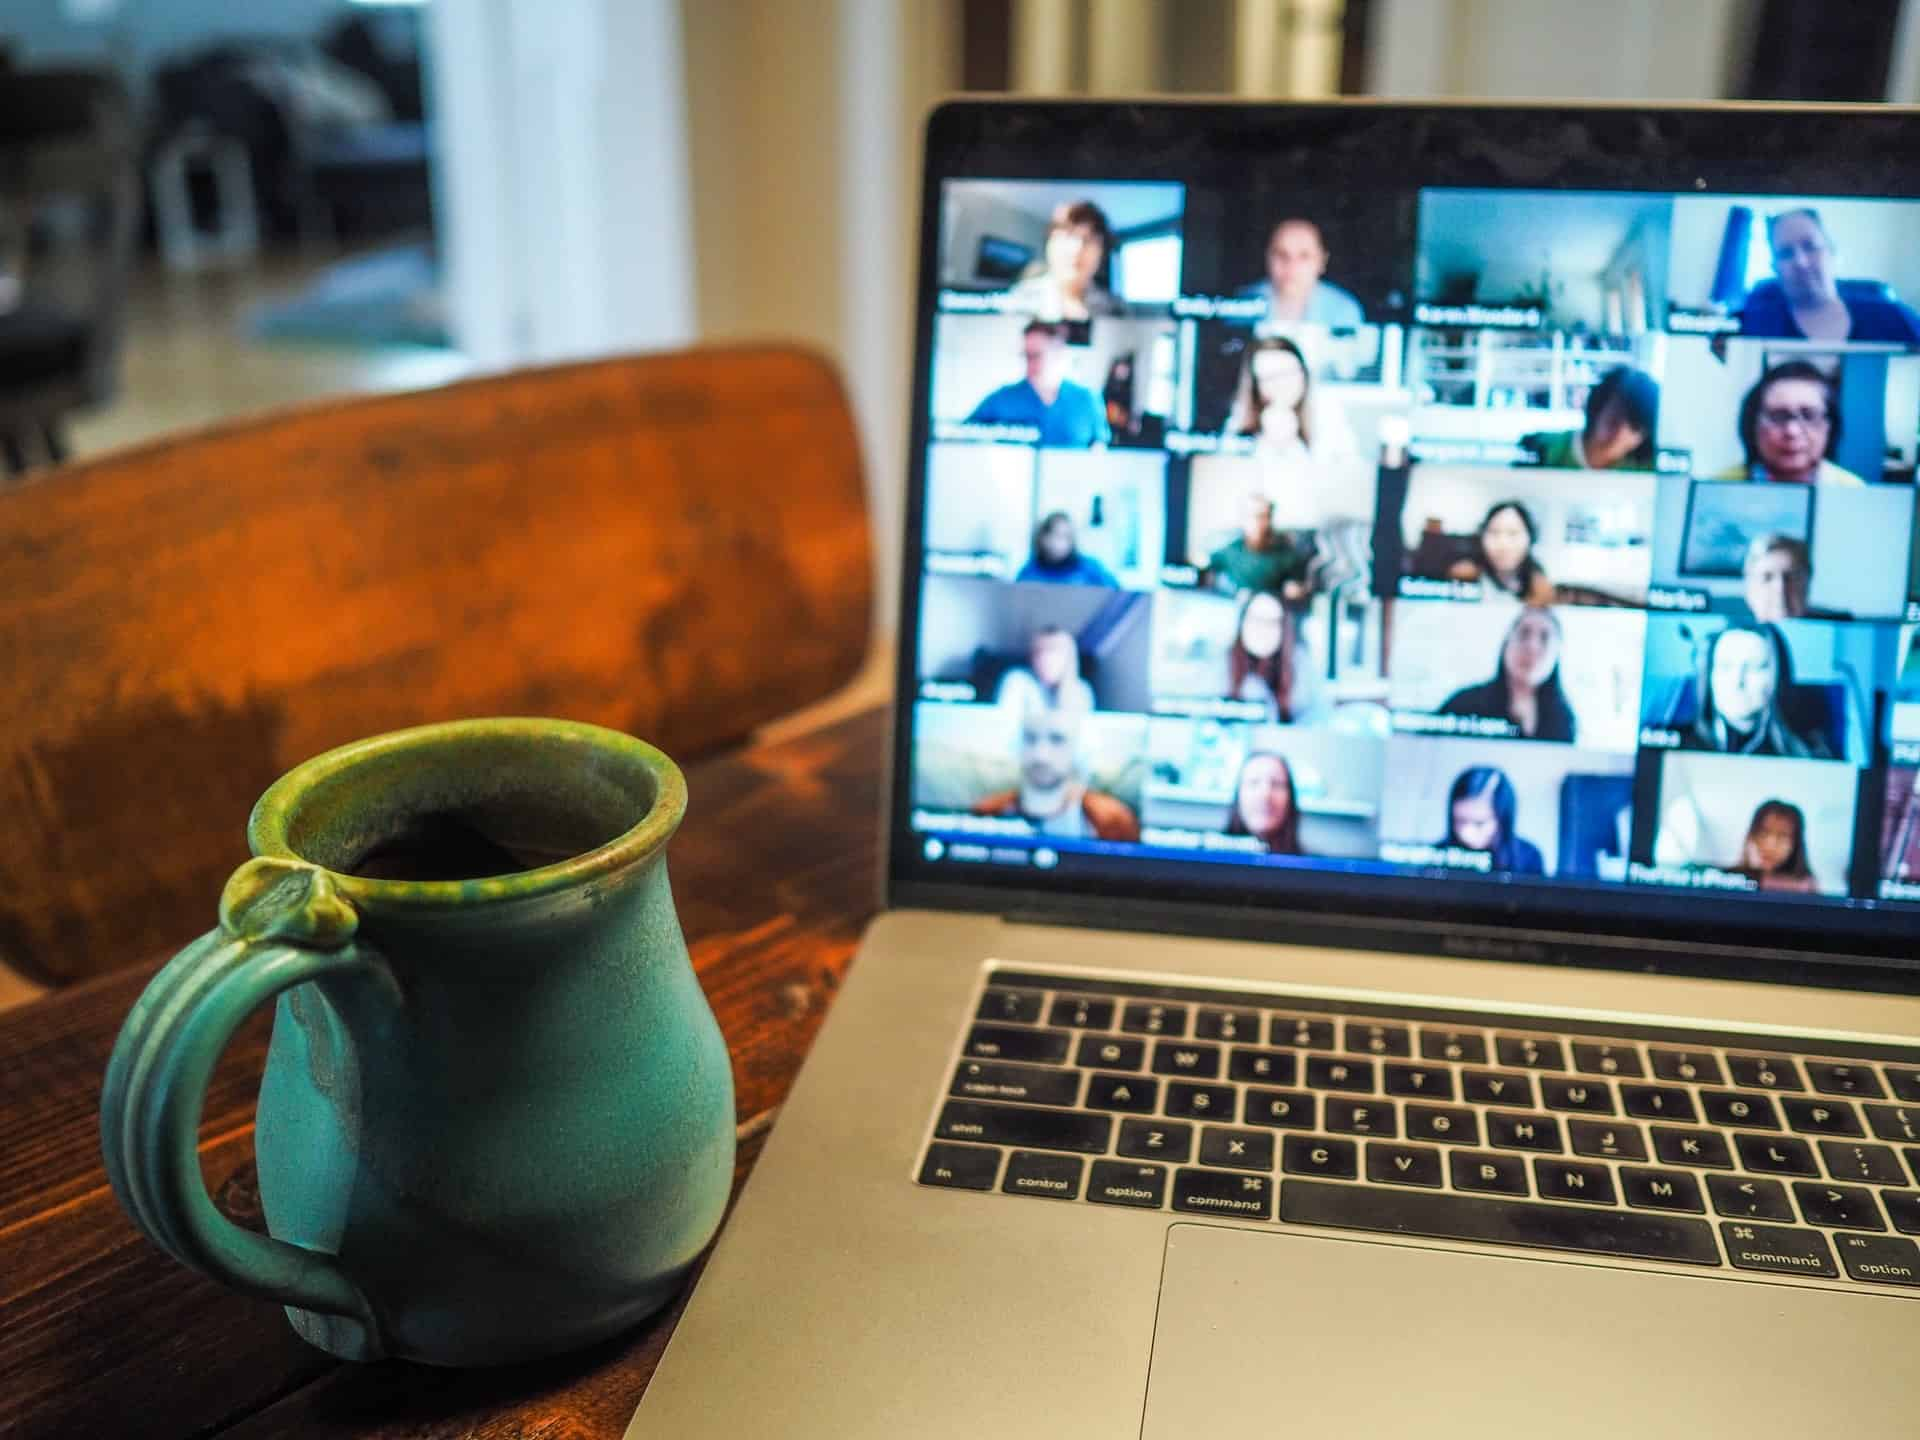 How To Tell If Your Laptop Webcam is Hacked